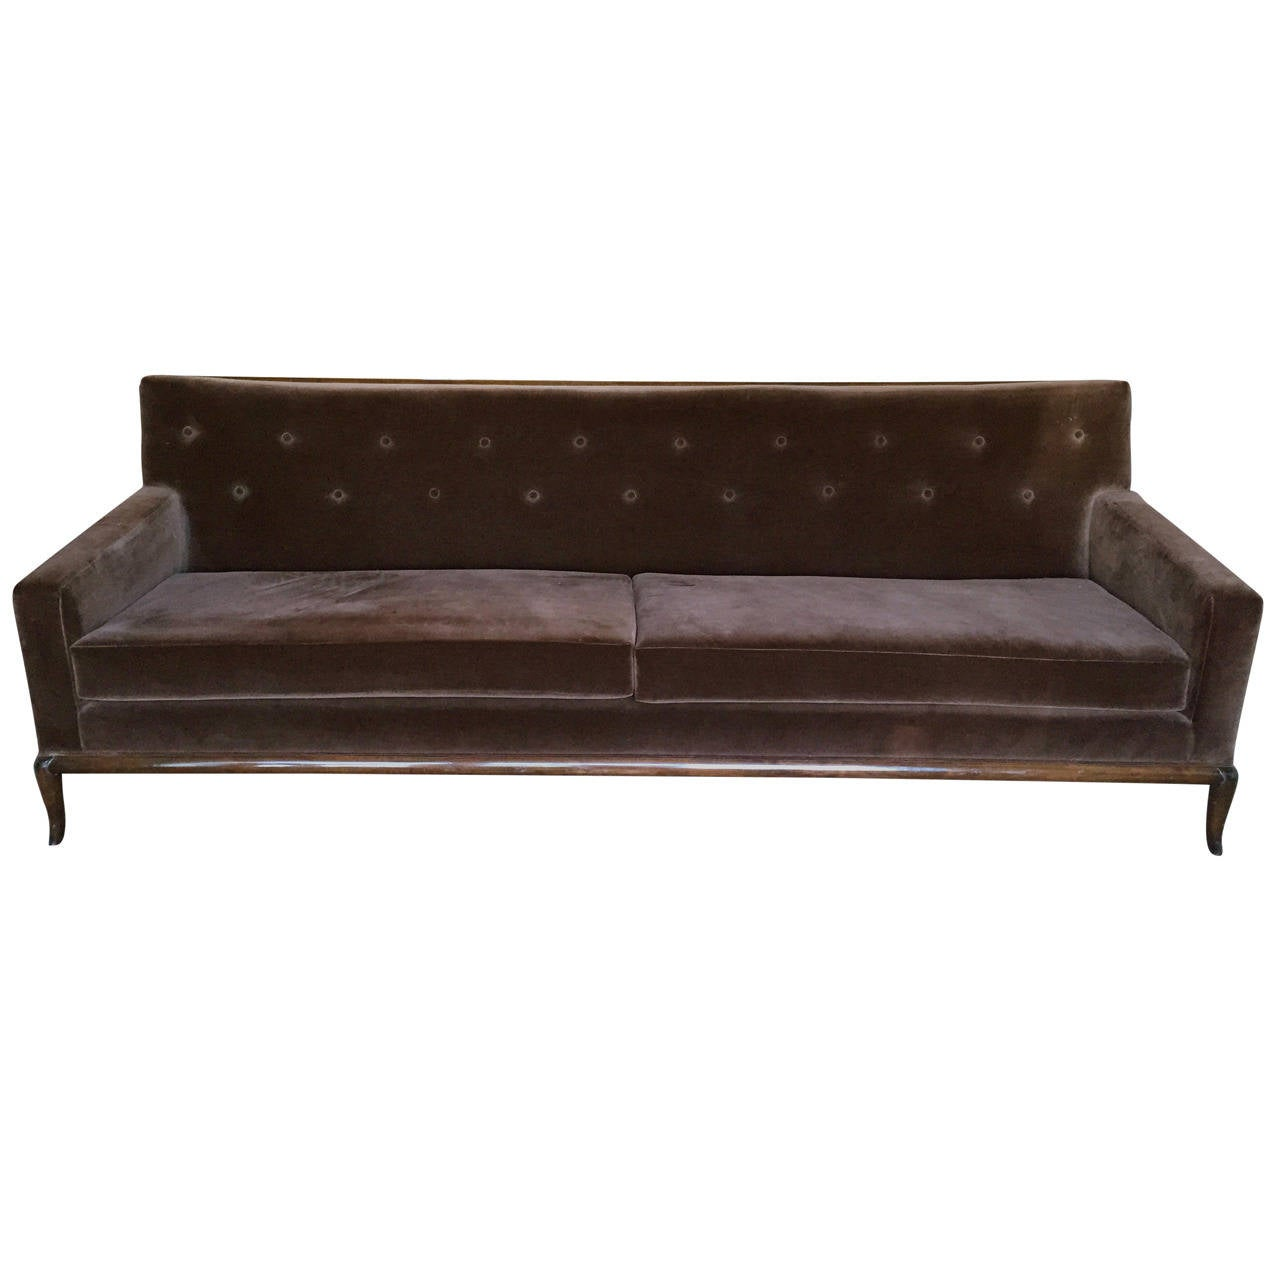 T.H. Robsjohn-Gibbings For Widdicomb Sofa For Sale At 1stdibs